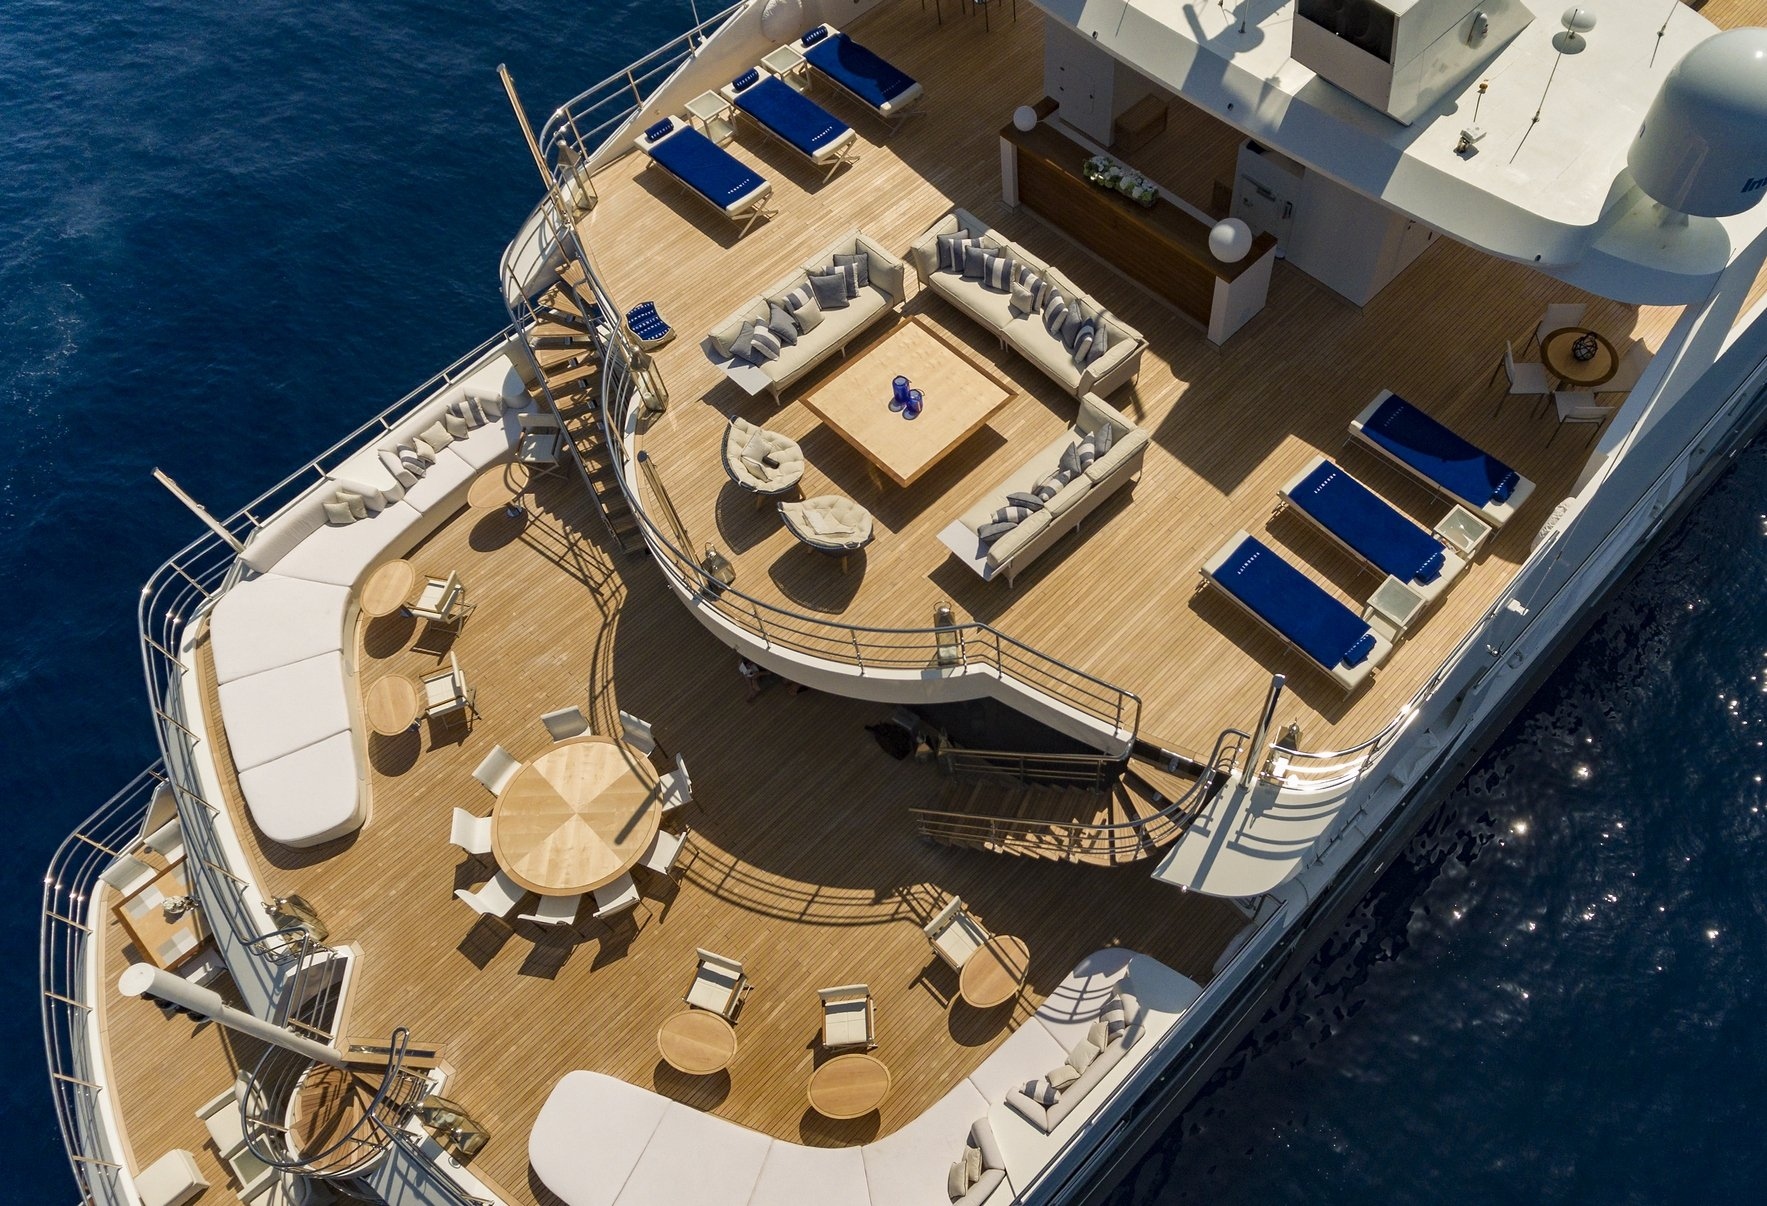 SERENITY Aft Aerial View